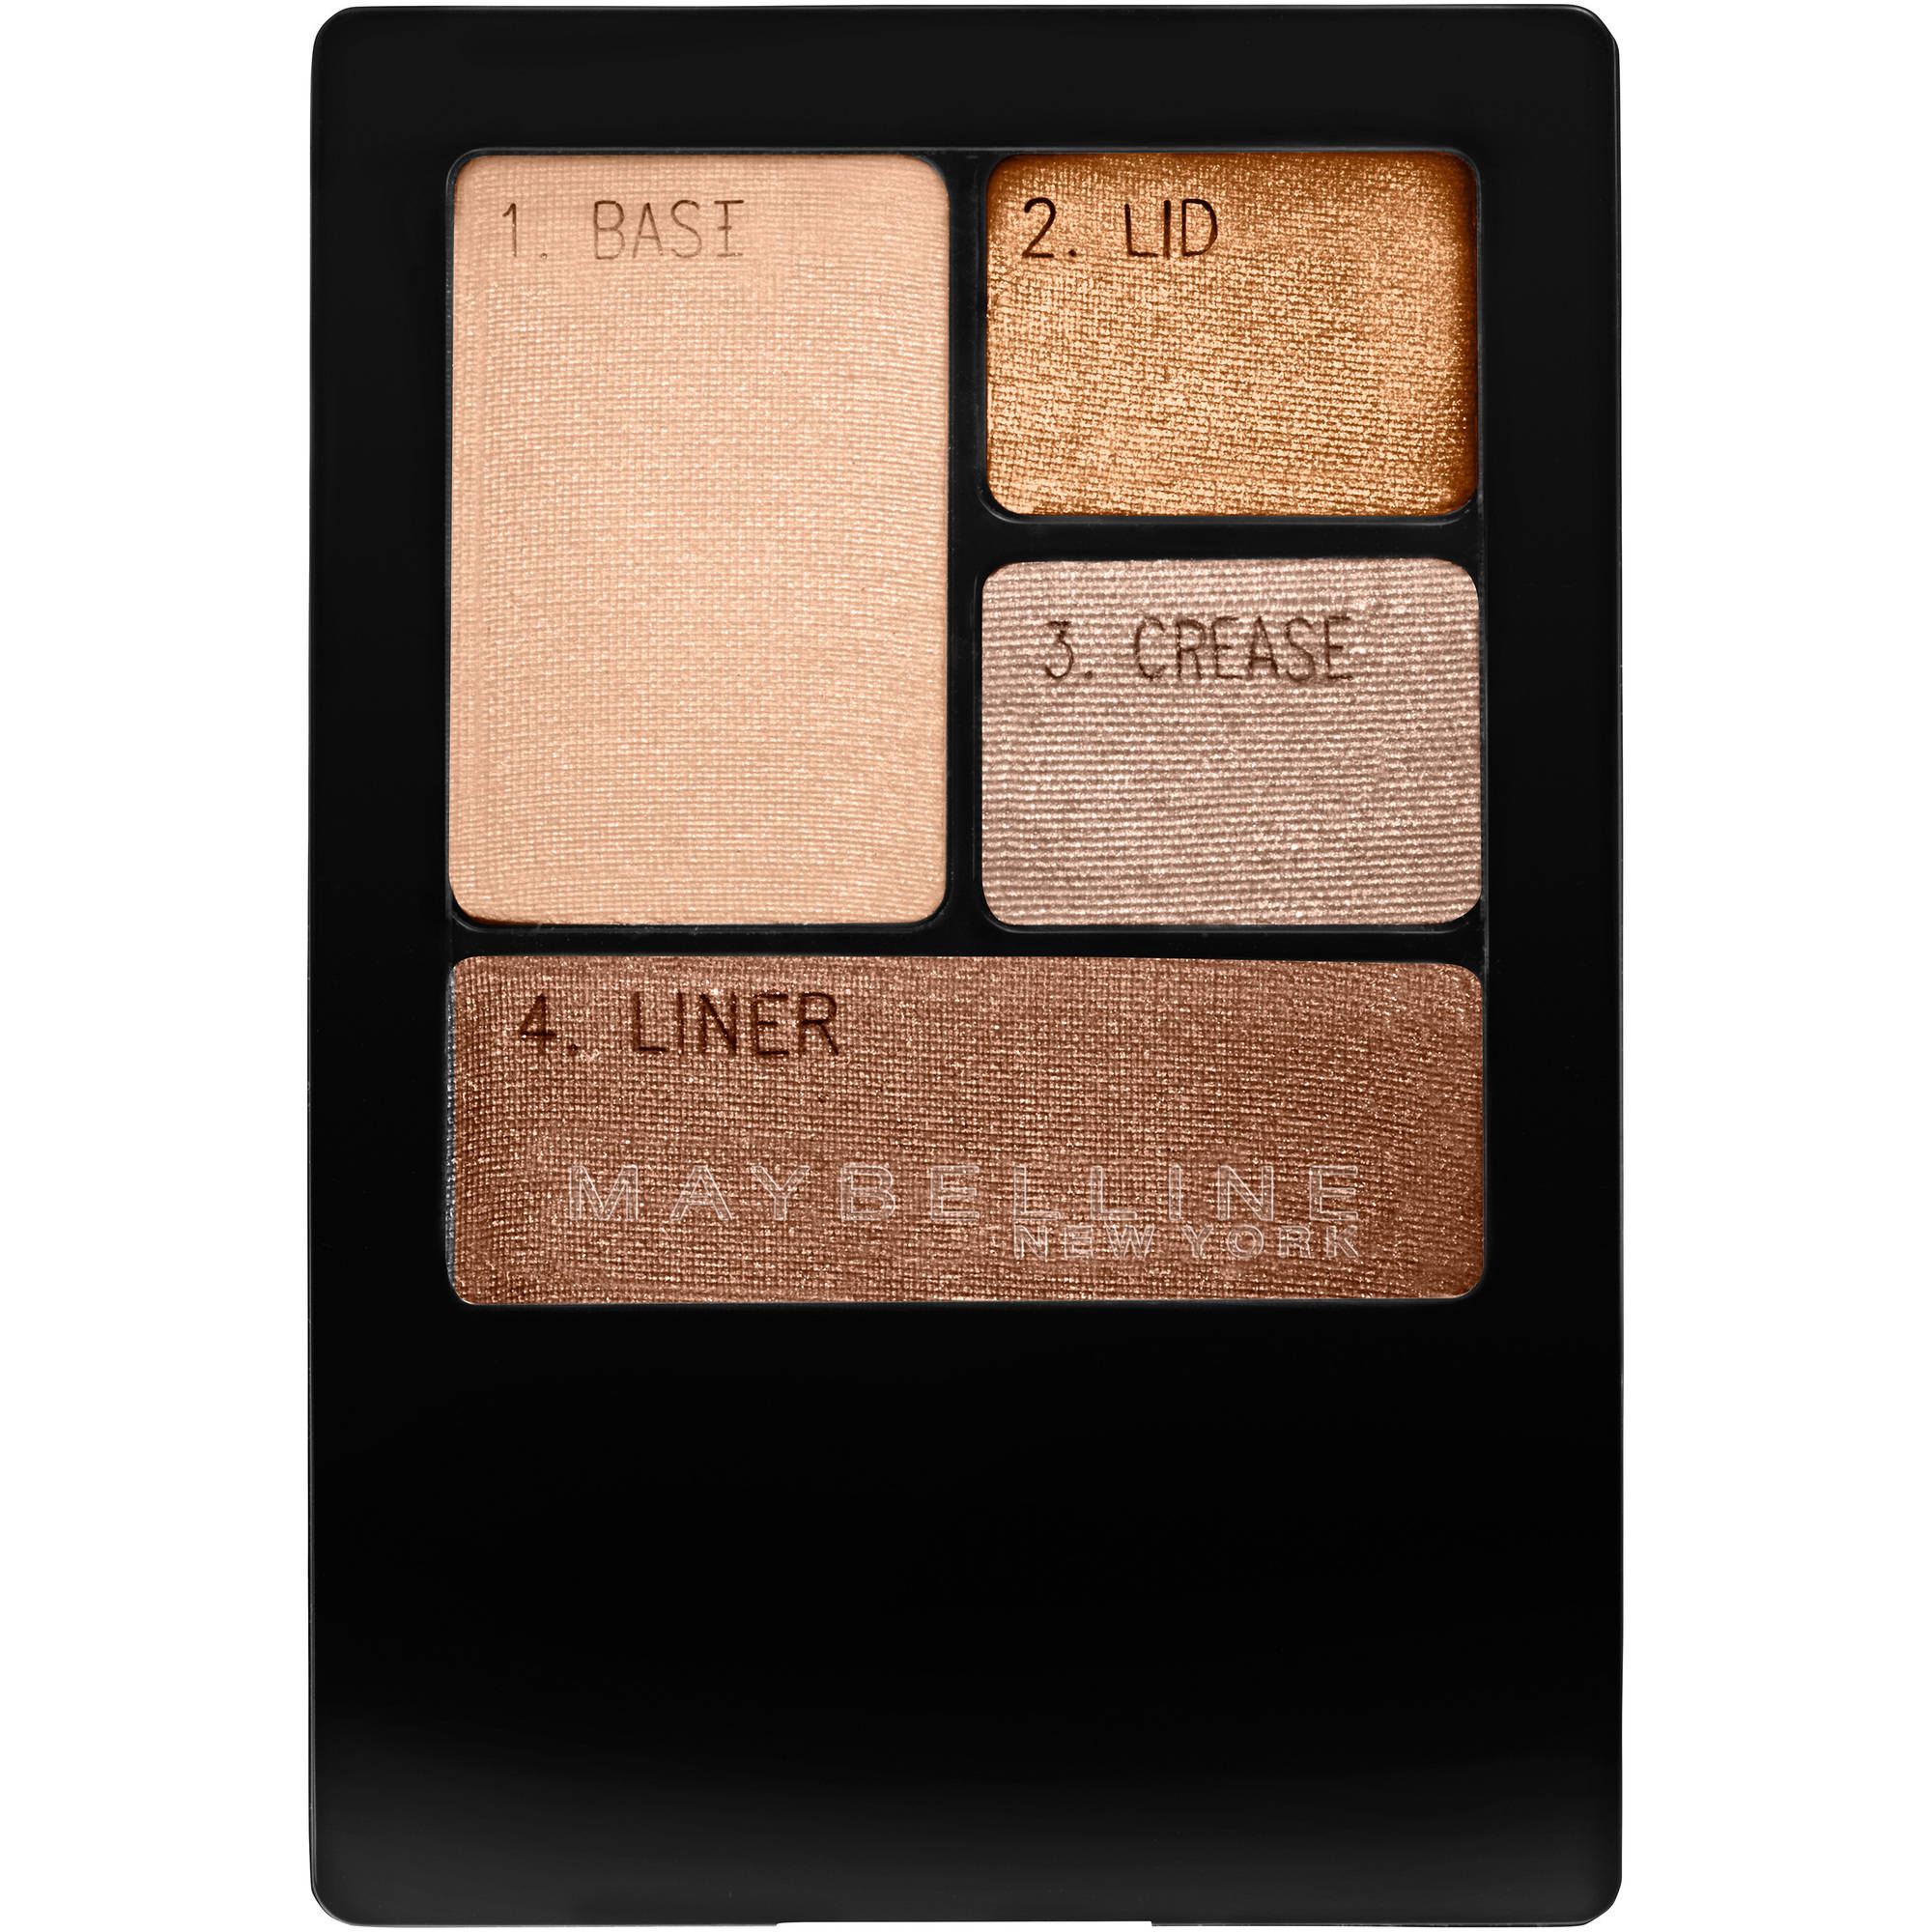 Maybelline New York Expert Wear Eyeshadow Quads, Chai Latte, 0.17 oz